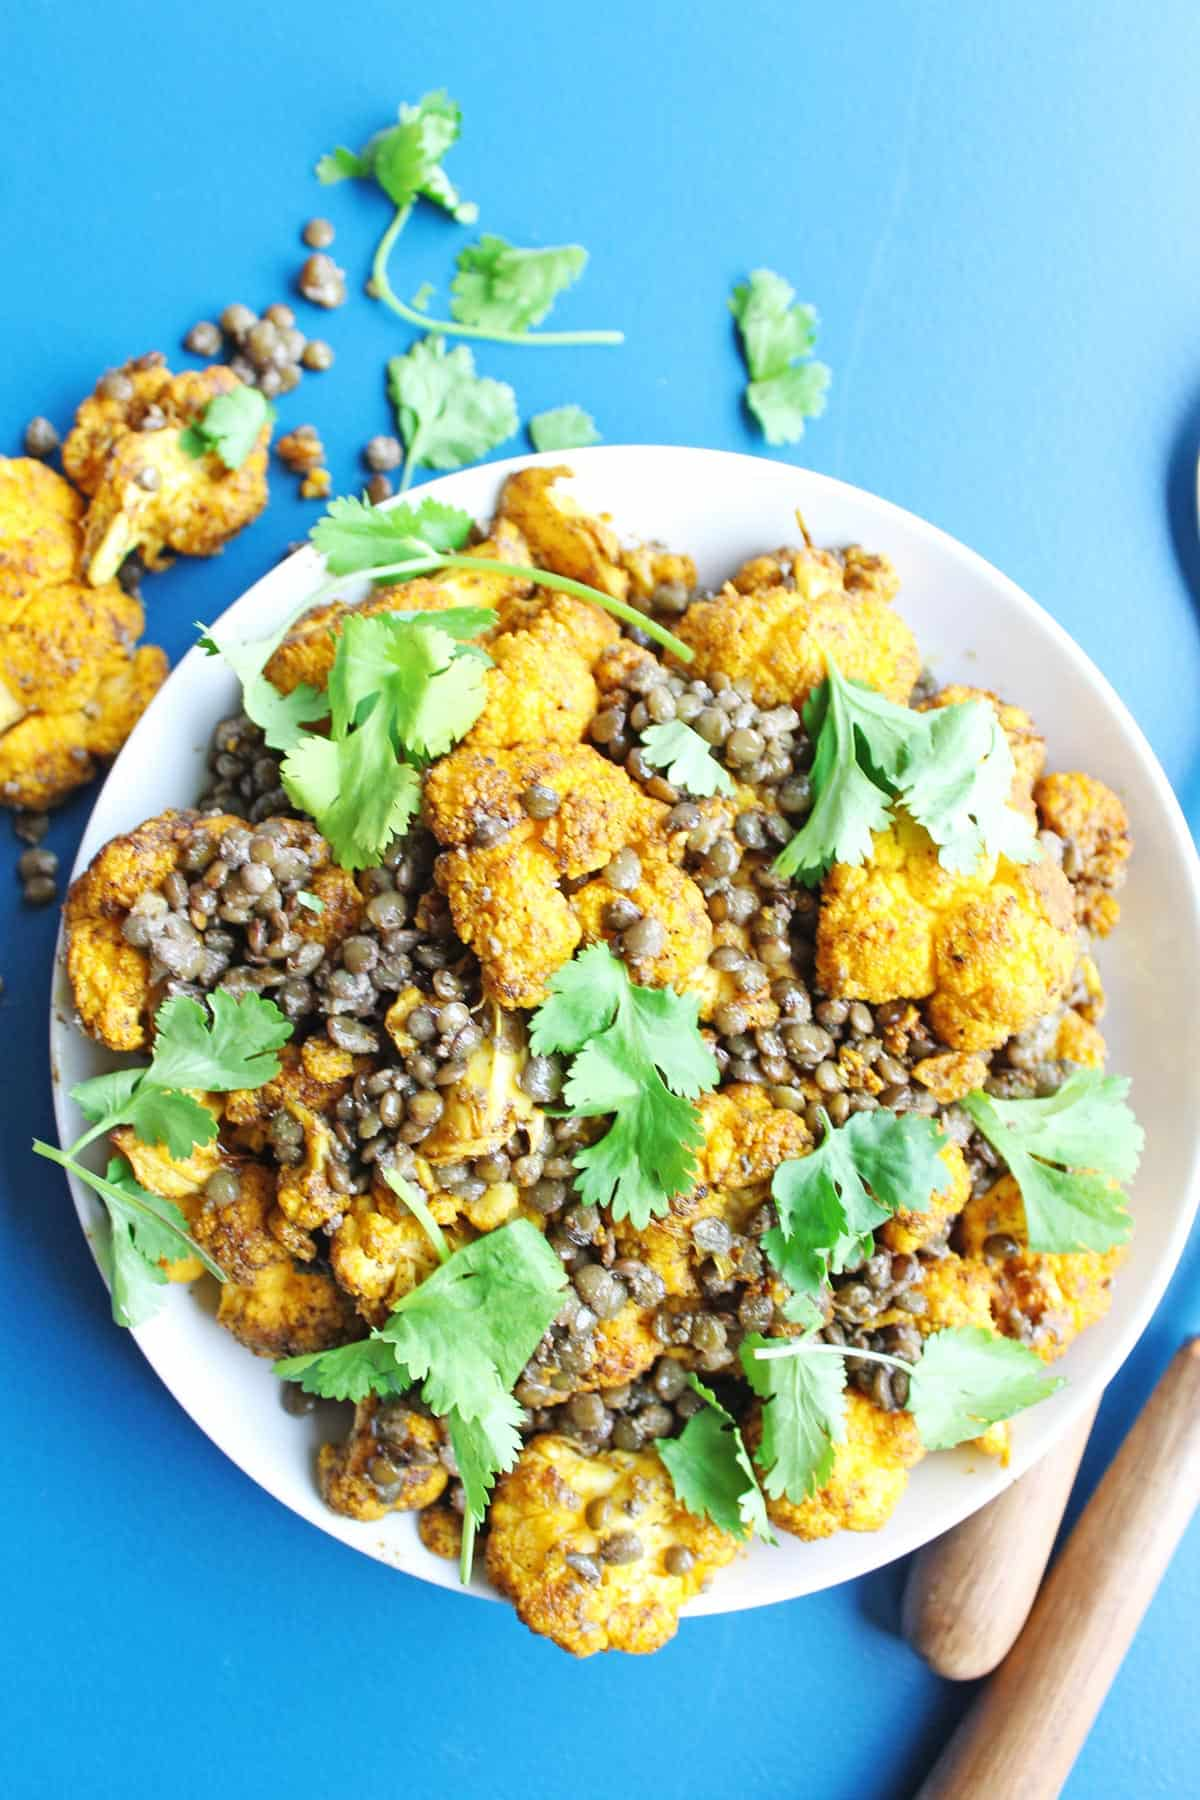 Cauliflower and lentils